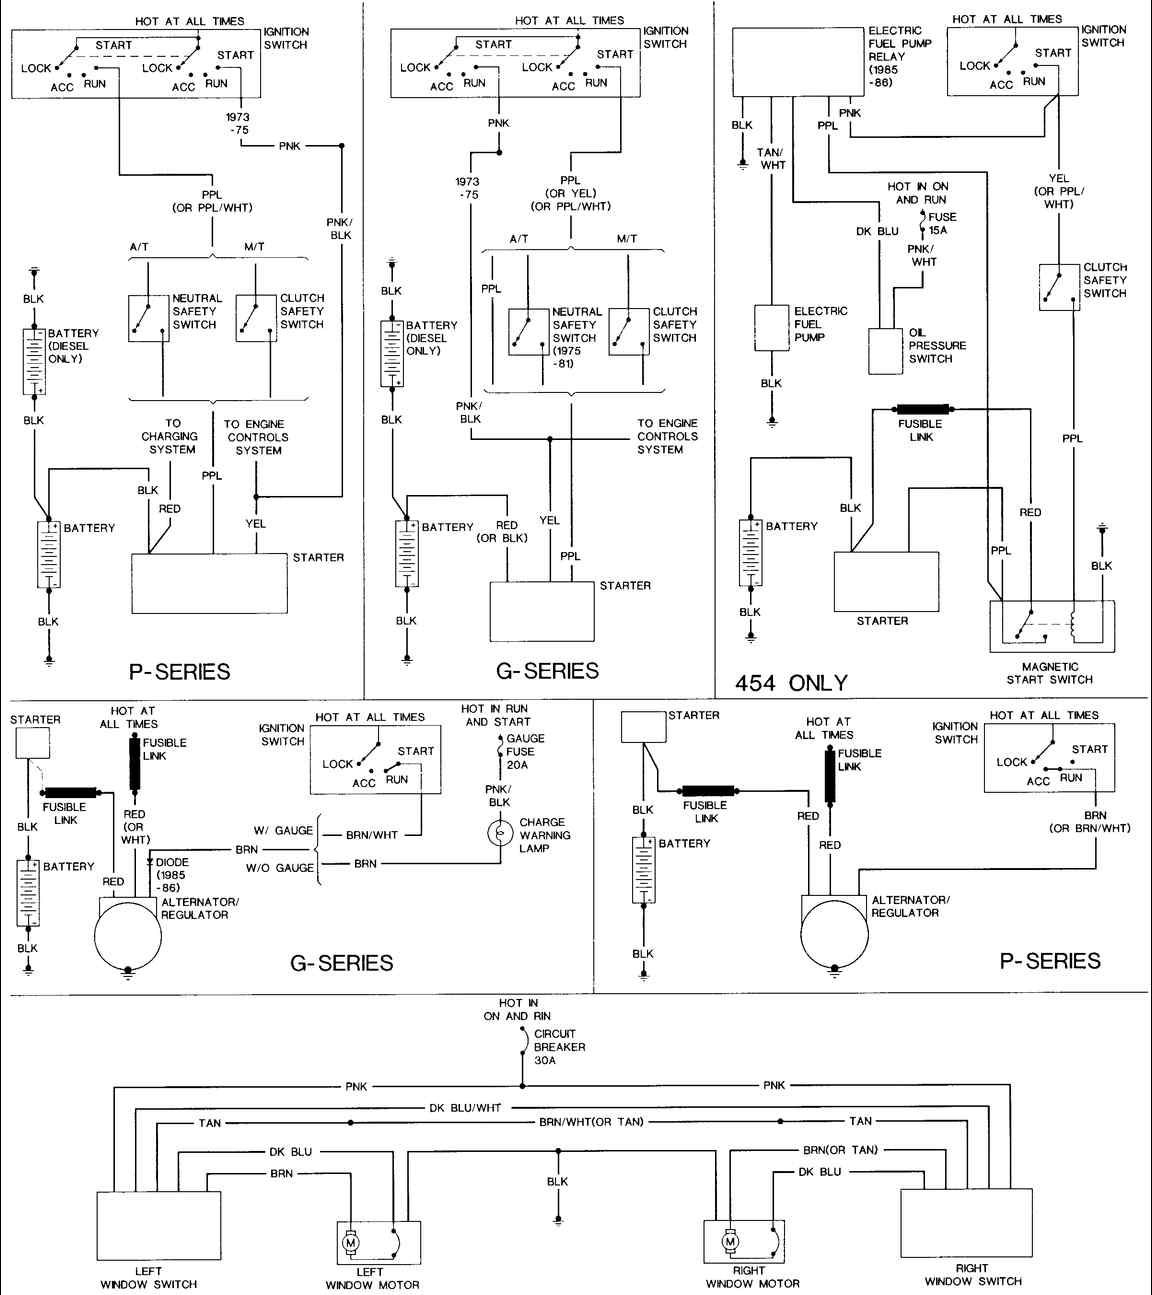 0c73623a181dc376dbb4777e2029d285 85 chevy truck wiring diagram 85 chevy van the steering column  at gsmx.co